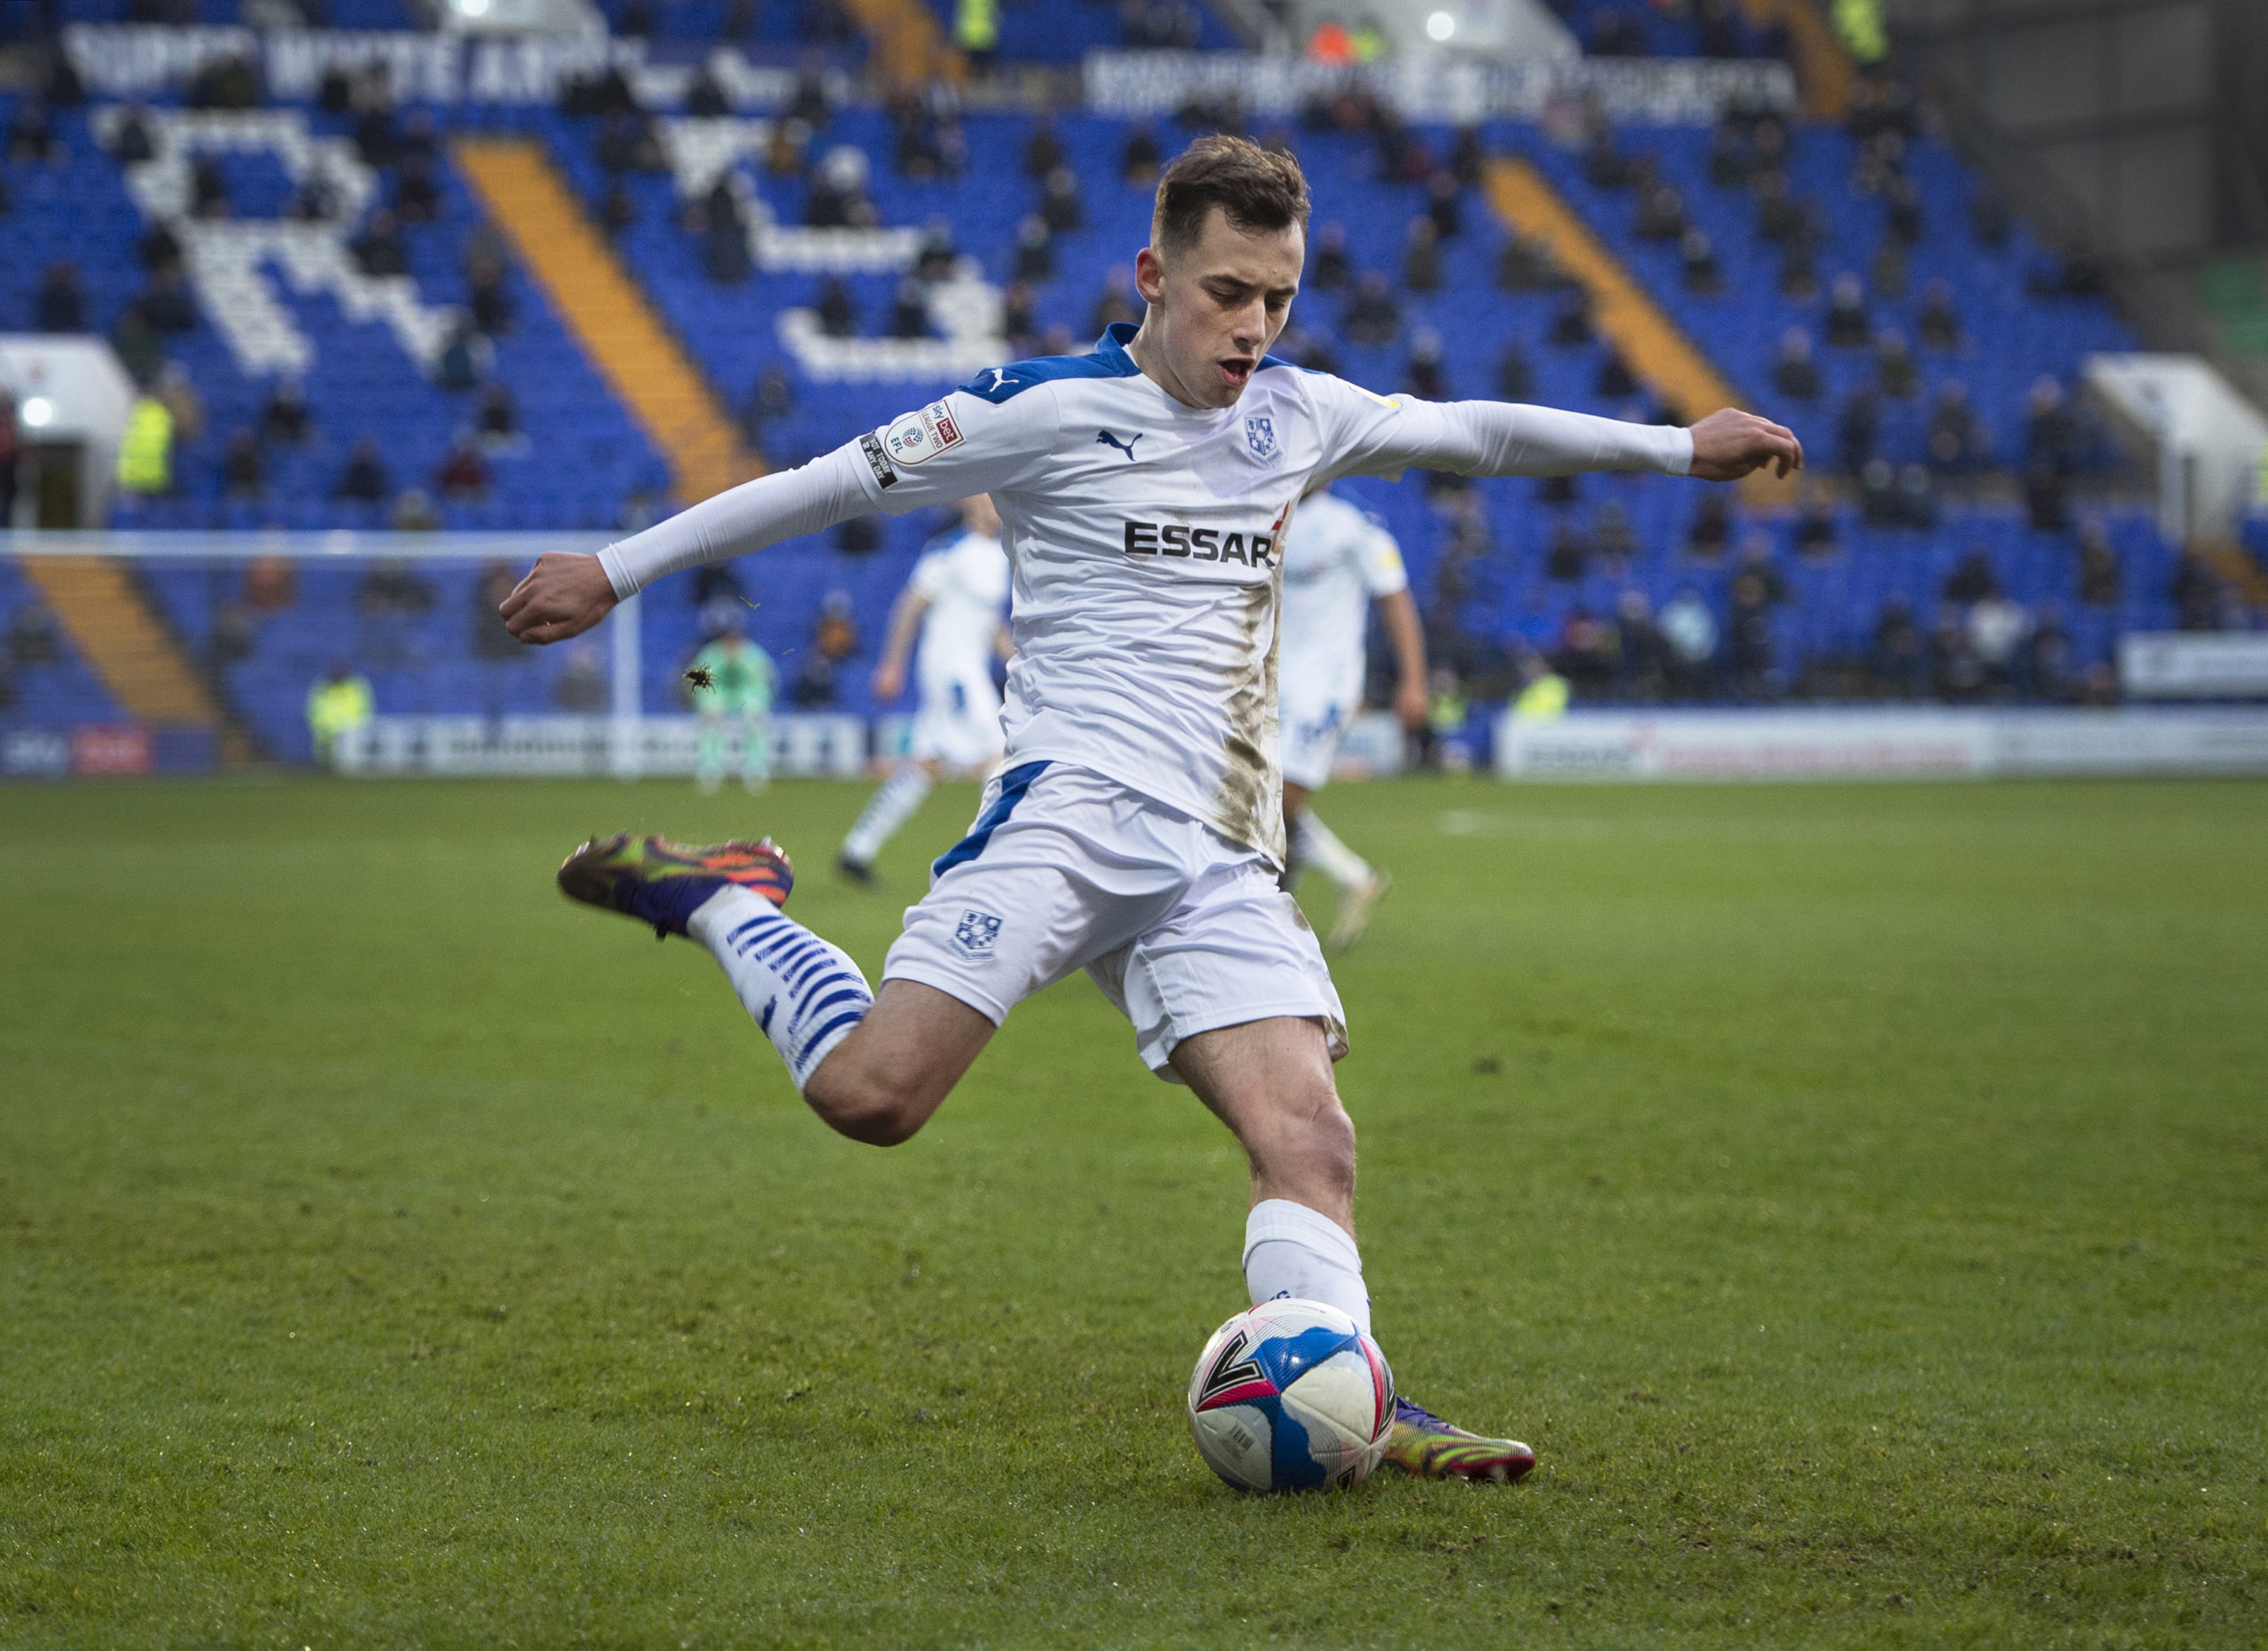 Tranmere Rovers v Walsall - Sky Bet League Two